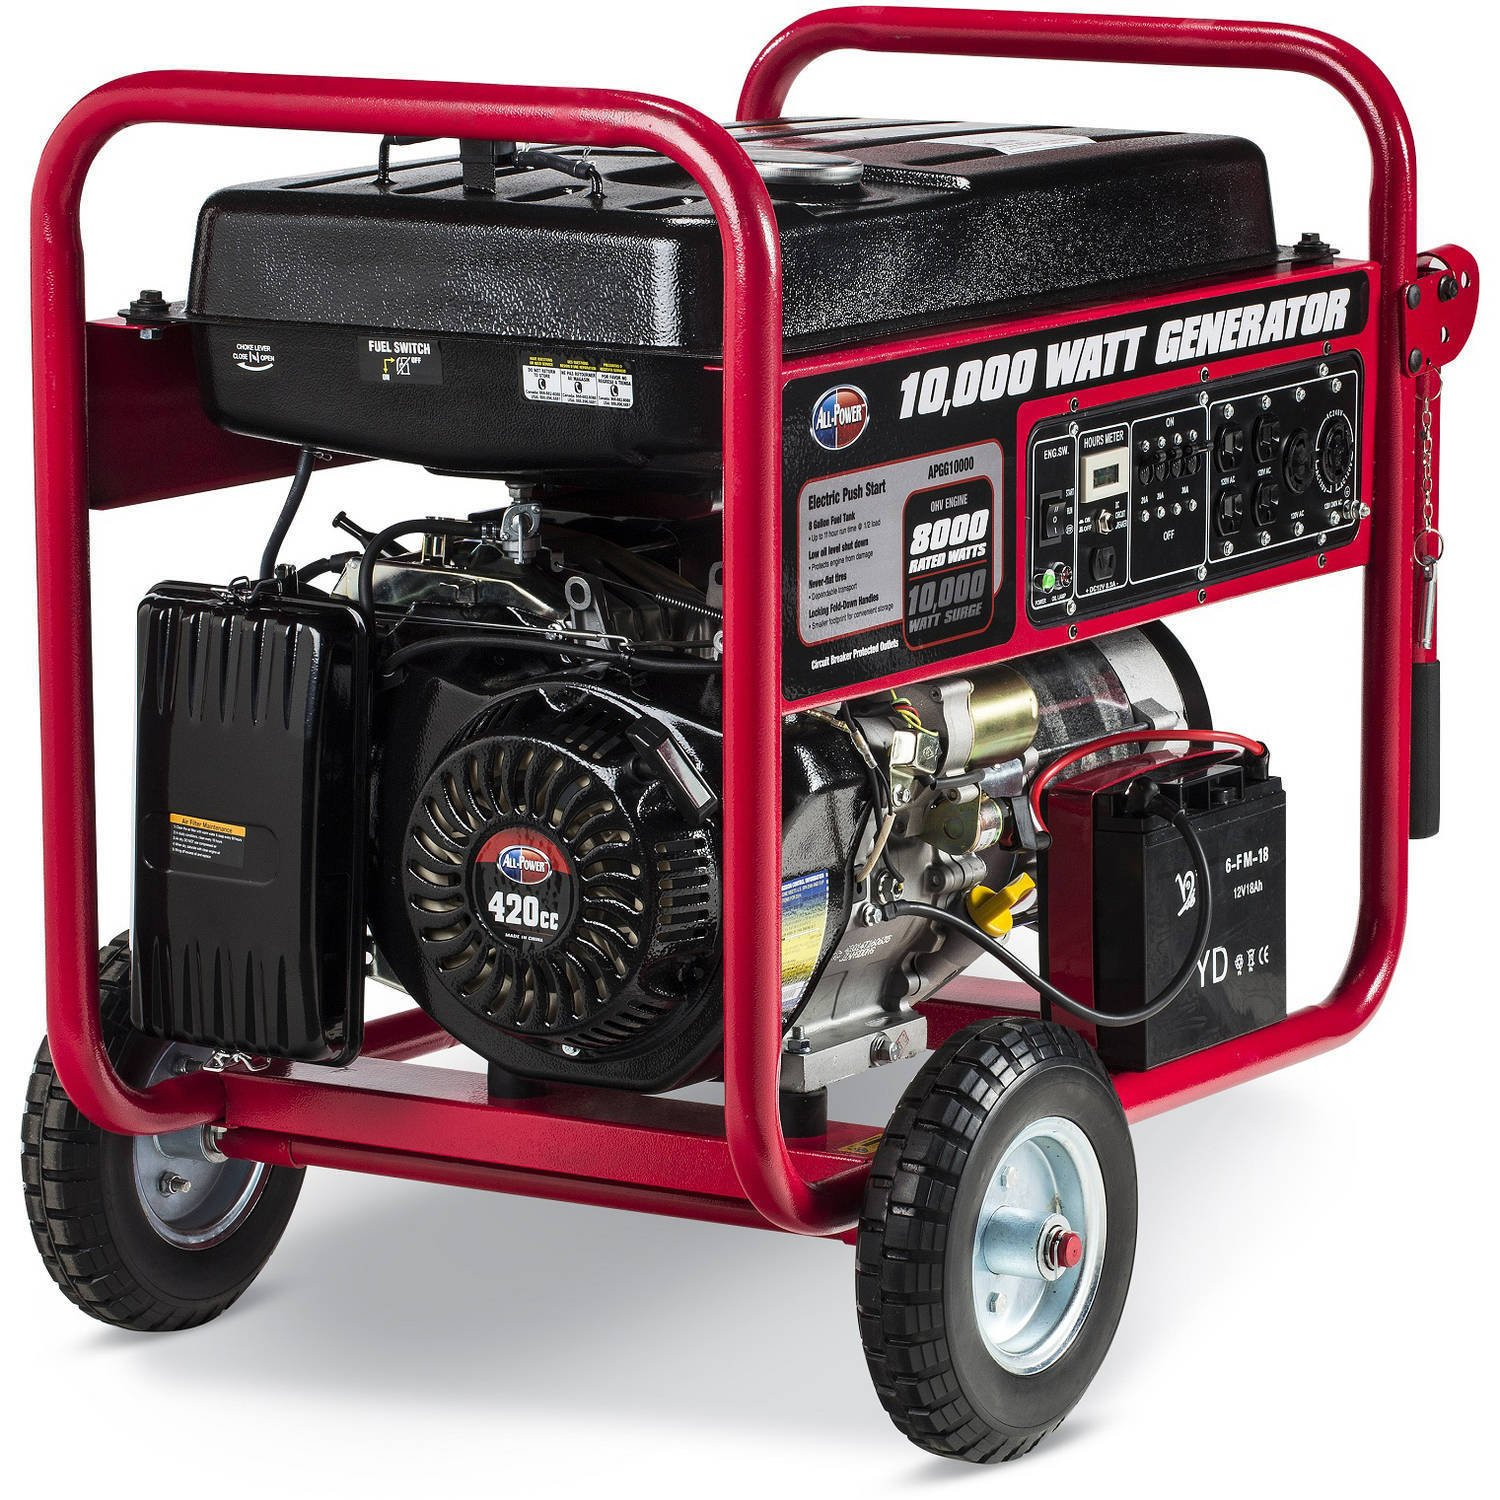 All Power America Apgg10000 10000w Watt Generator With 240 Volt Inlet Wiring Diagram Electric Start Portable Gas For Home Use Emergency Backup Rv Standby